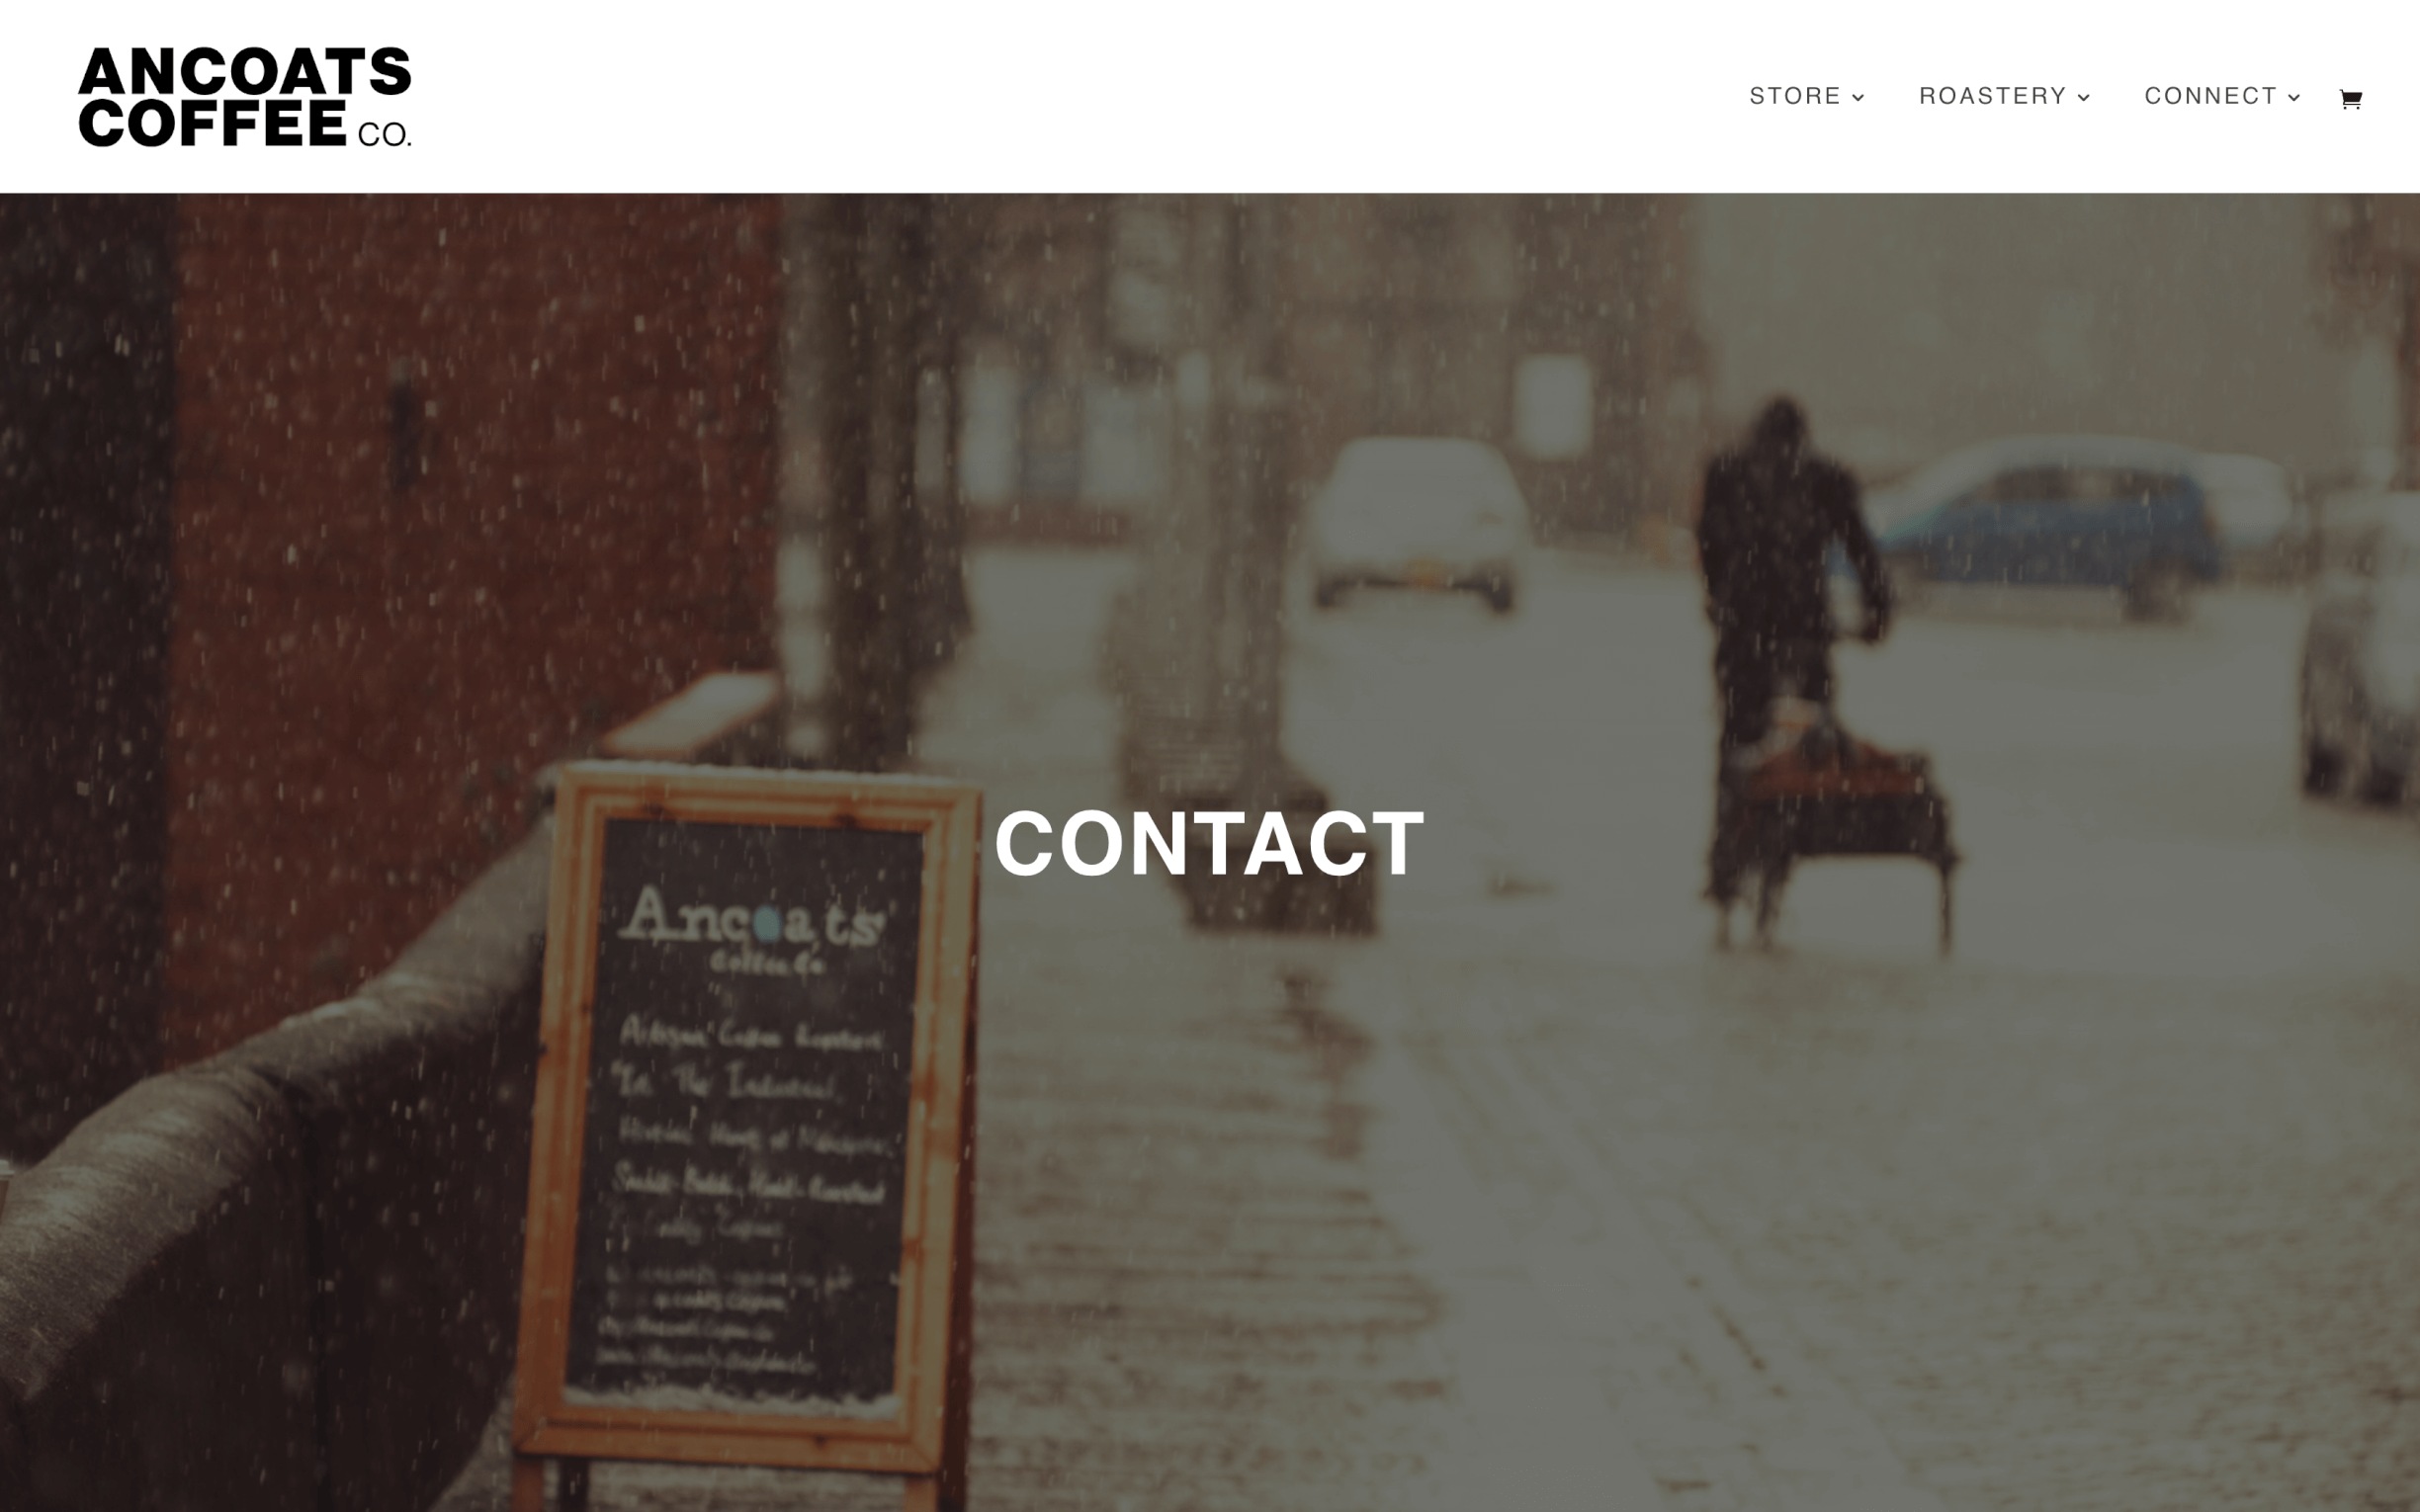 Screen Shot 2018 07 02 at 17.14.37 - Cafe and coffee roastery website design